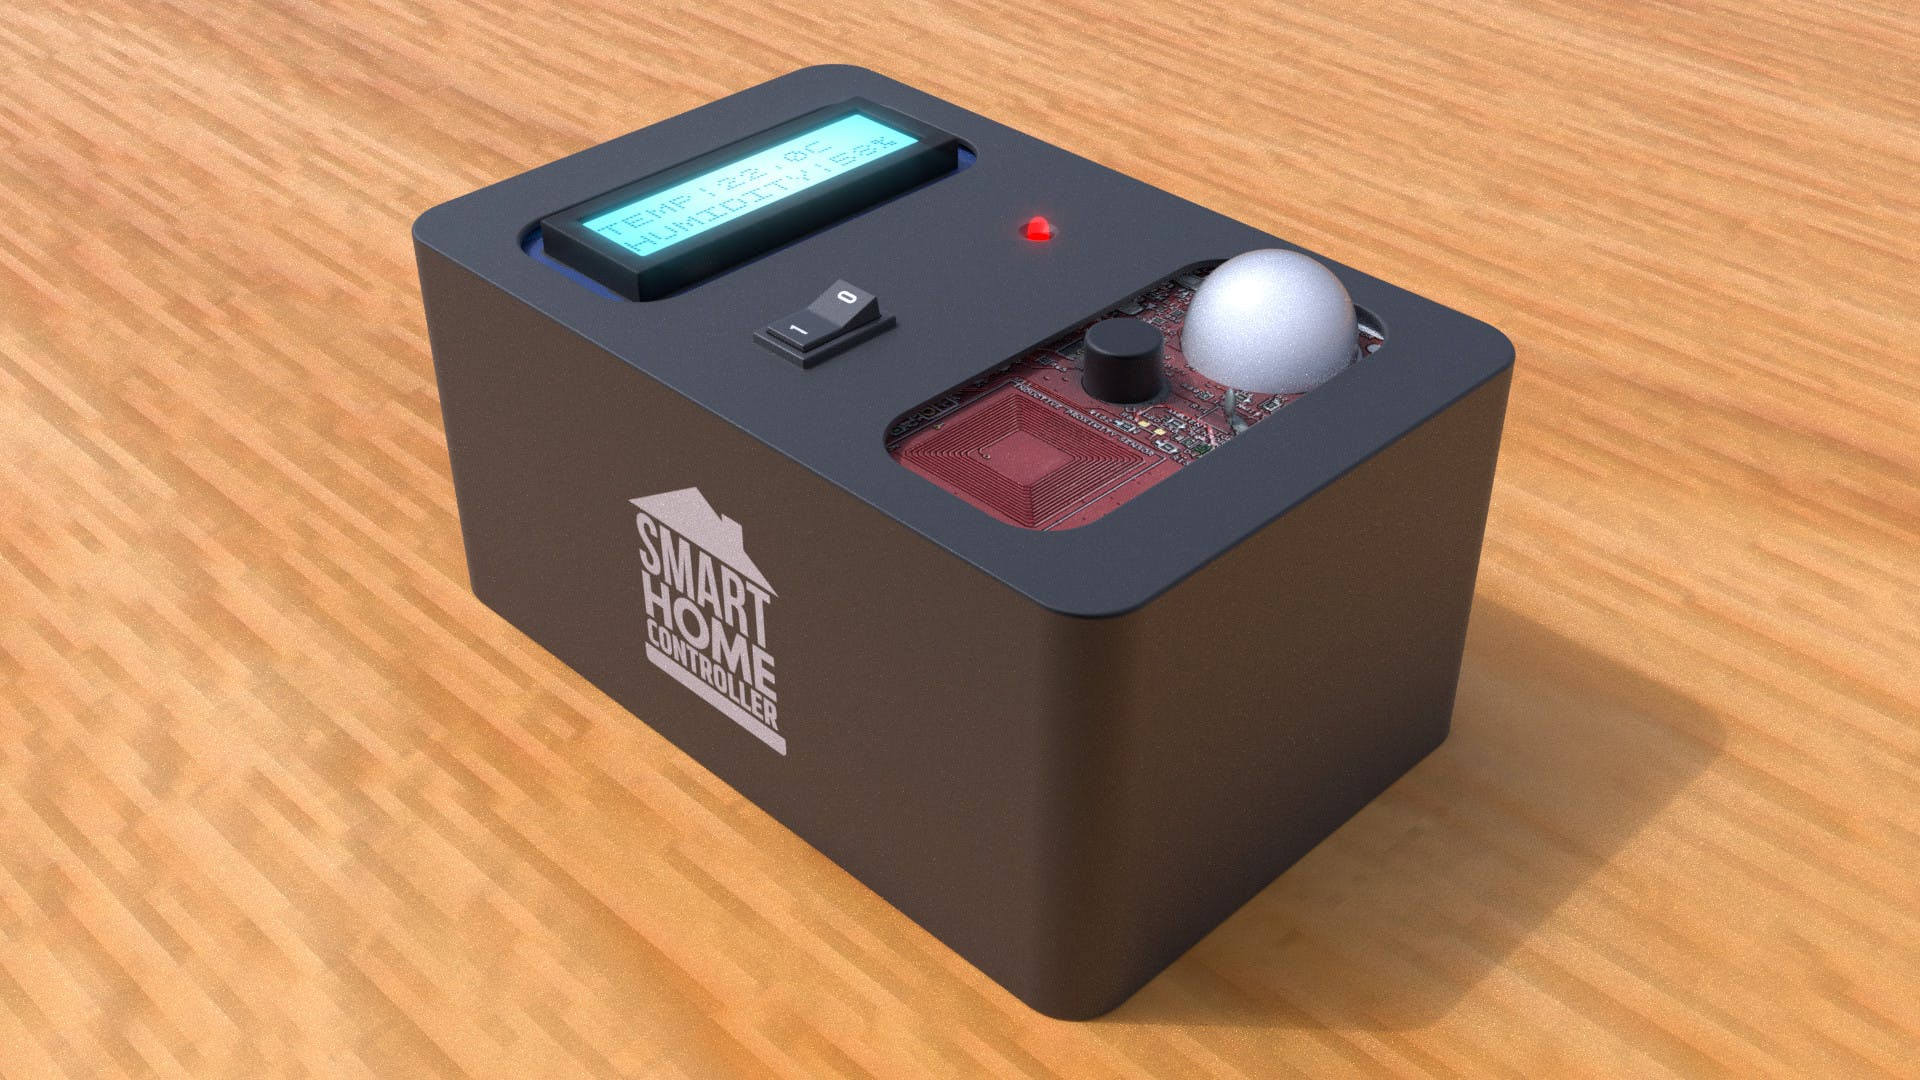 Sample render of the final product